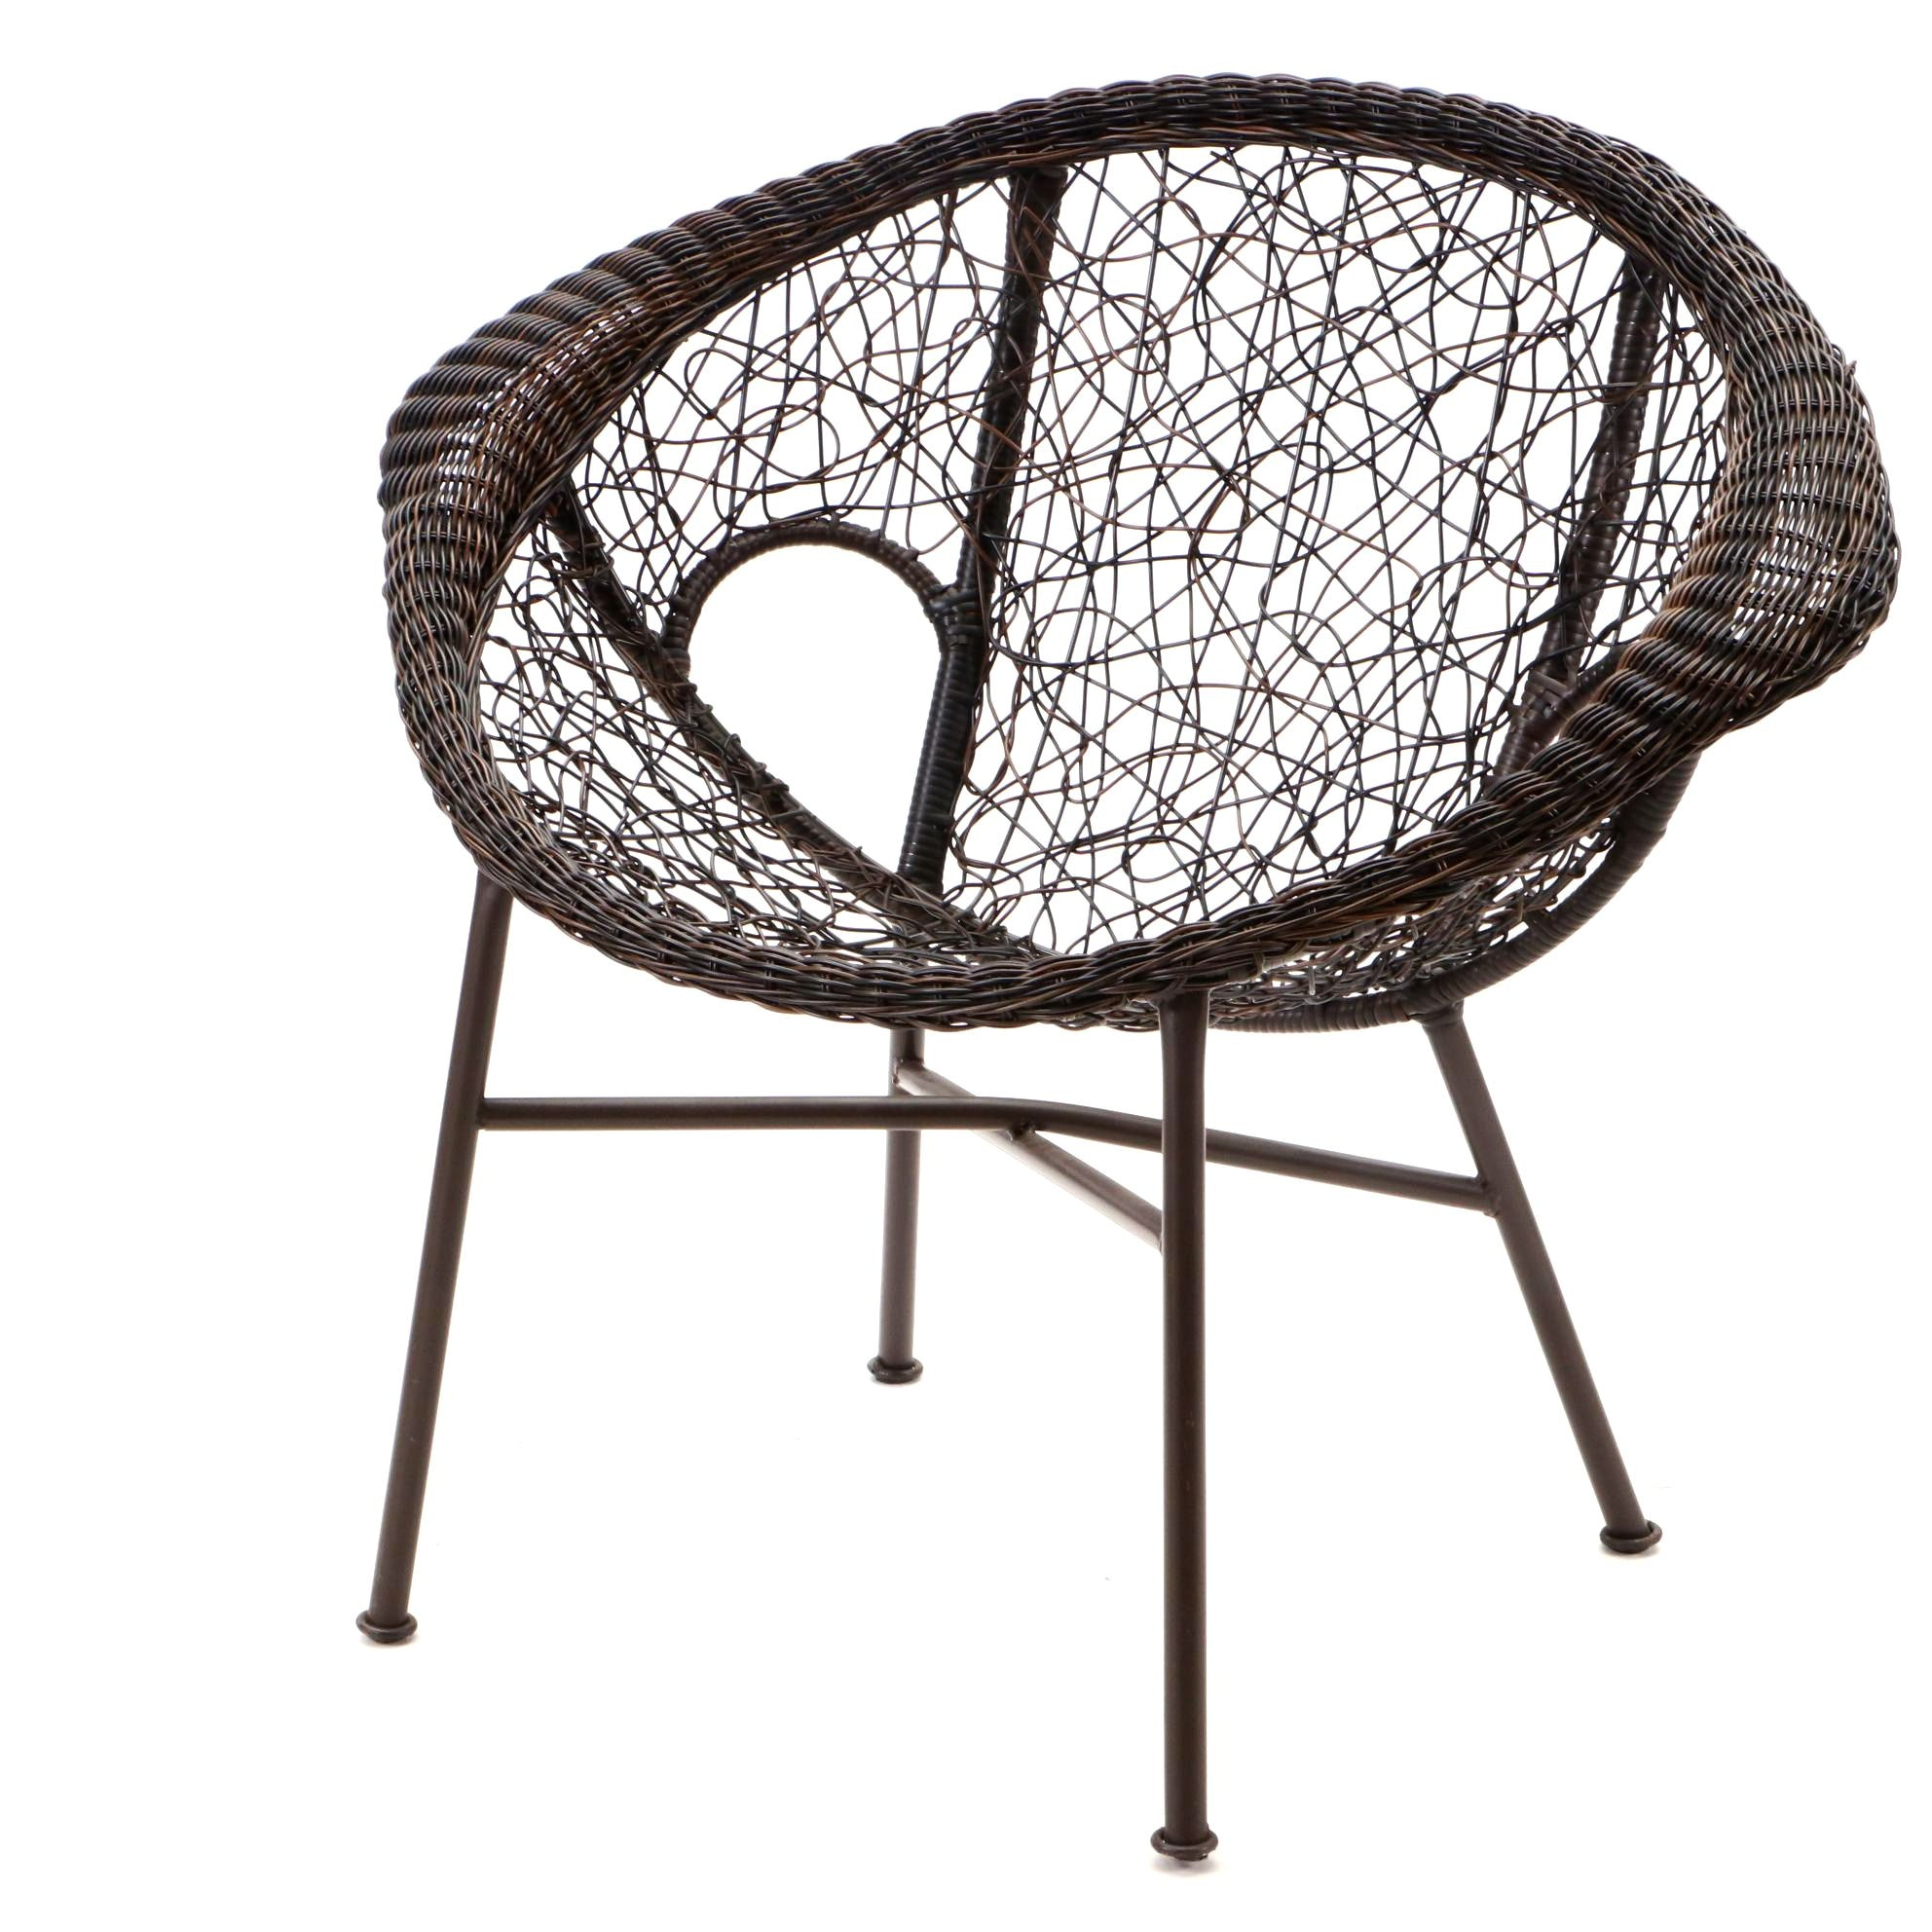 Contemporary Synthetic Wicker Bowl Chair